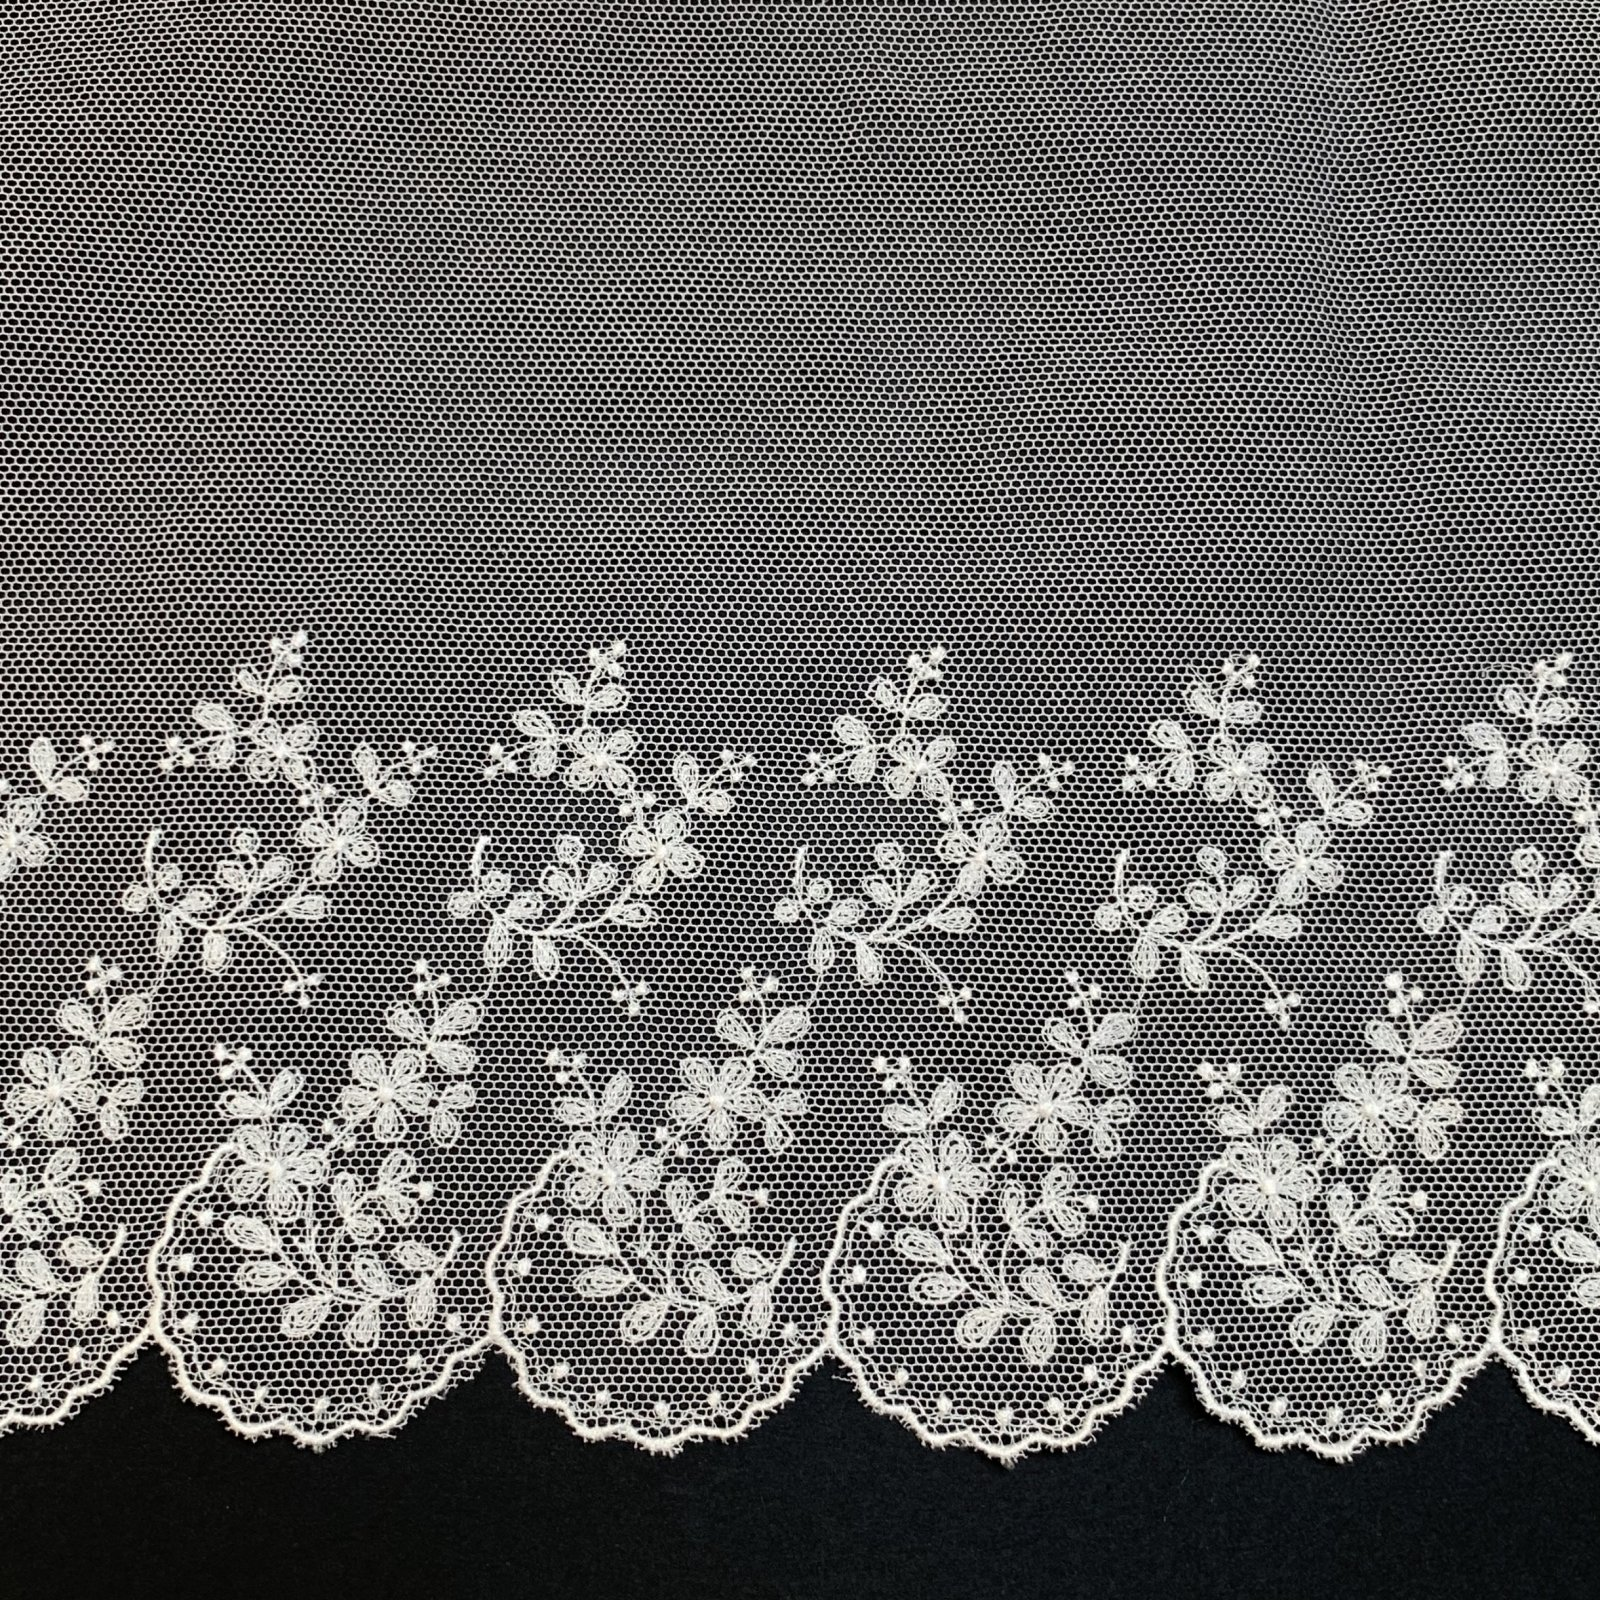 Netting Lace Edging 8 Inch Soft White 4206-8